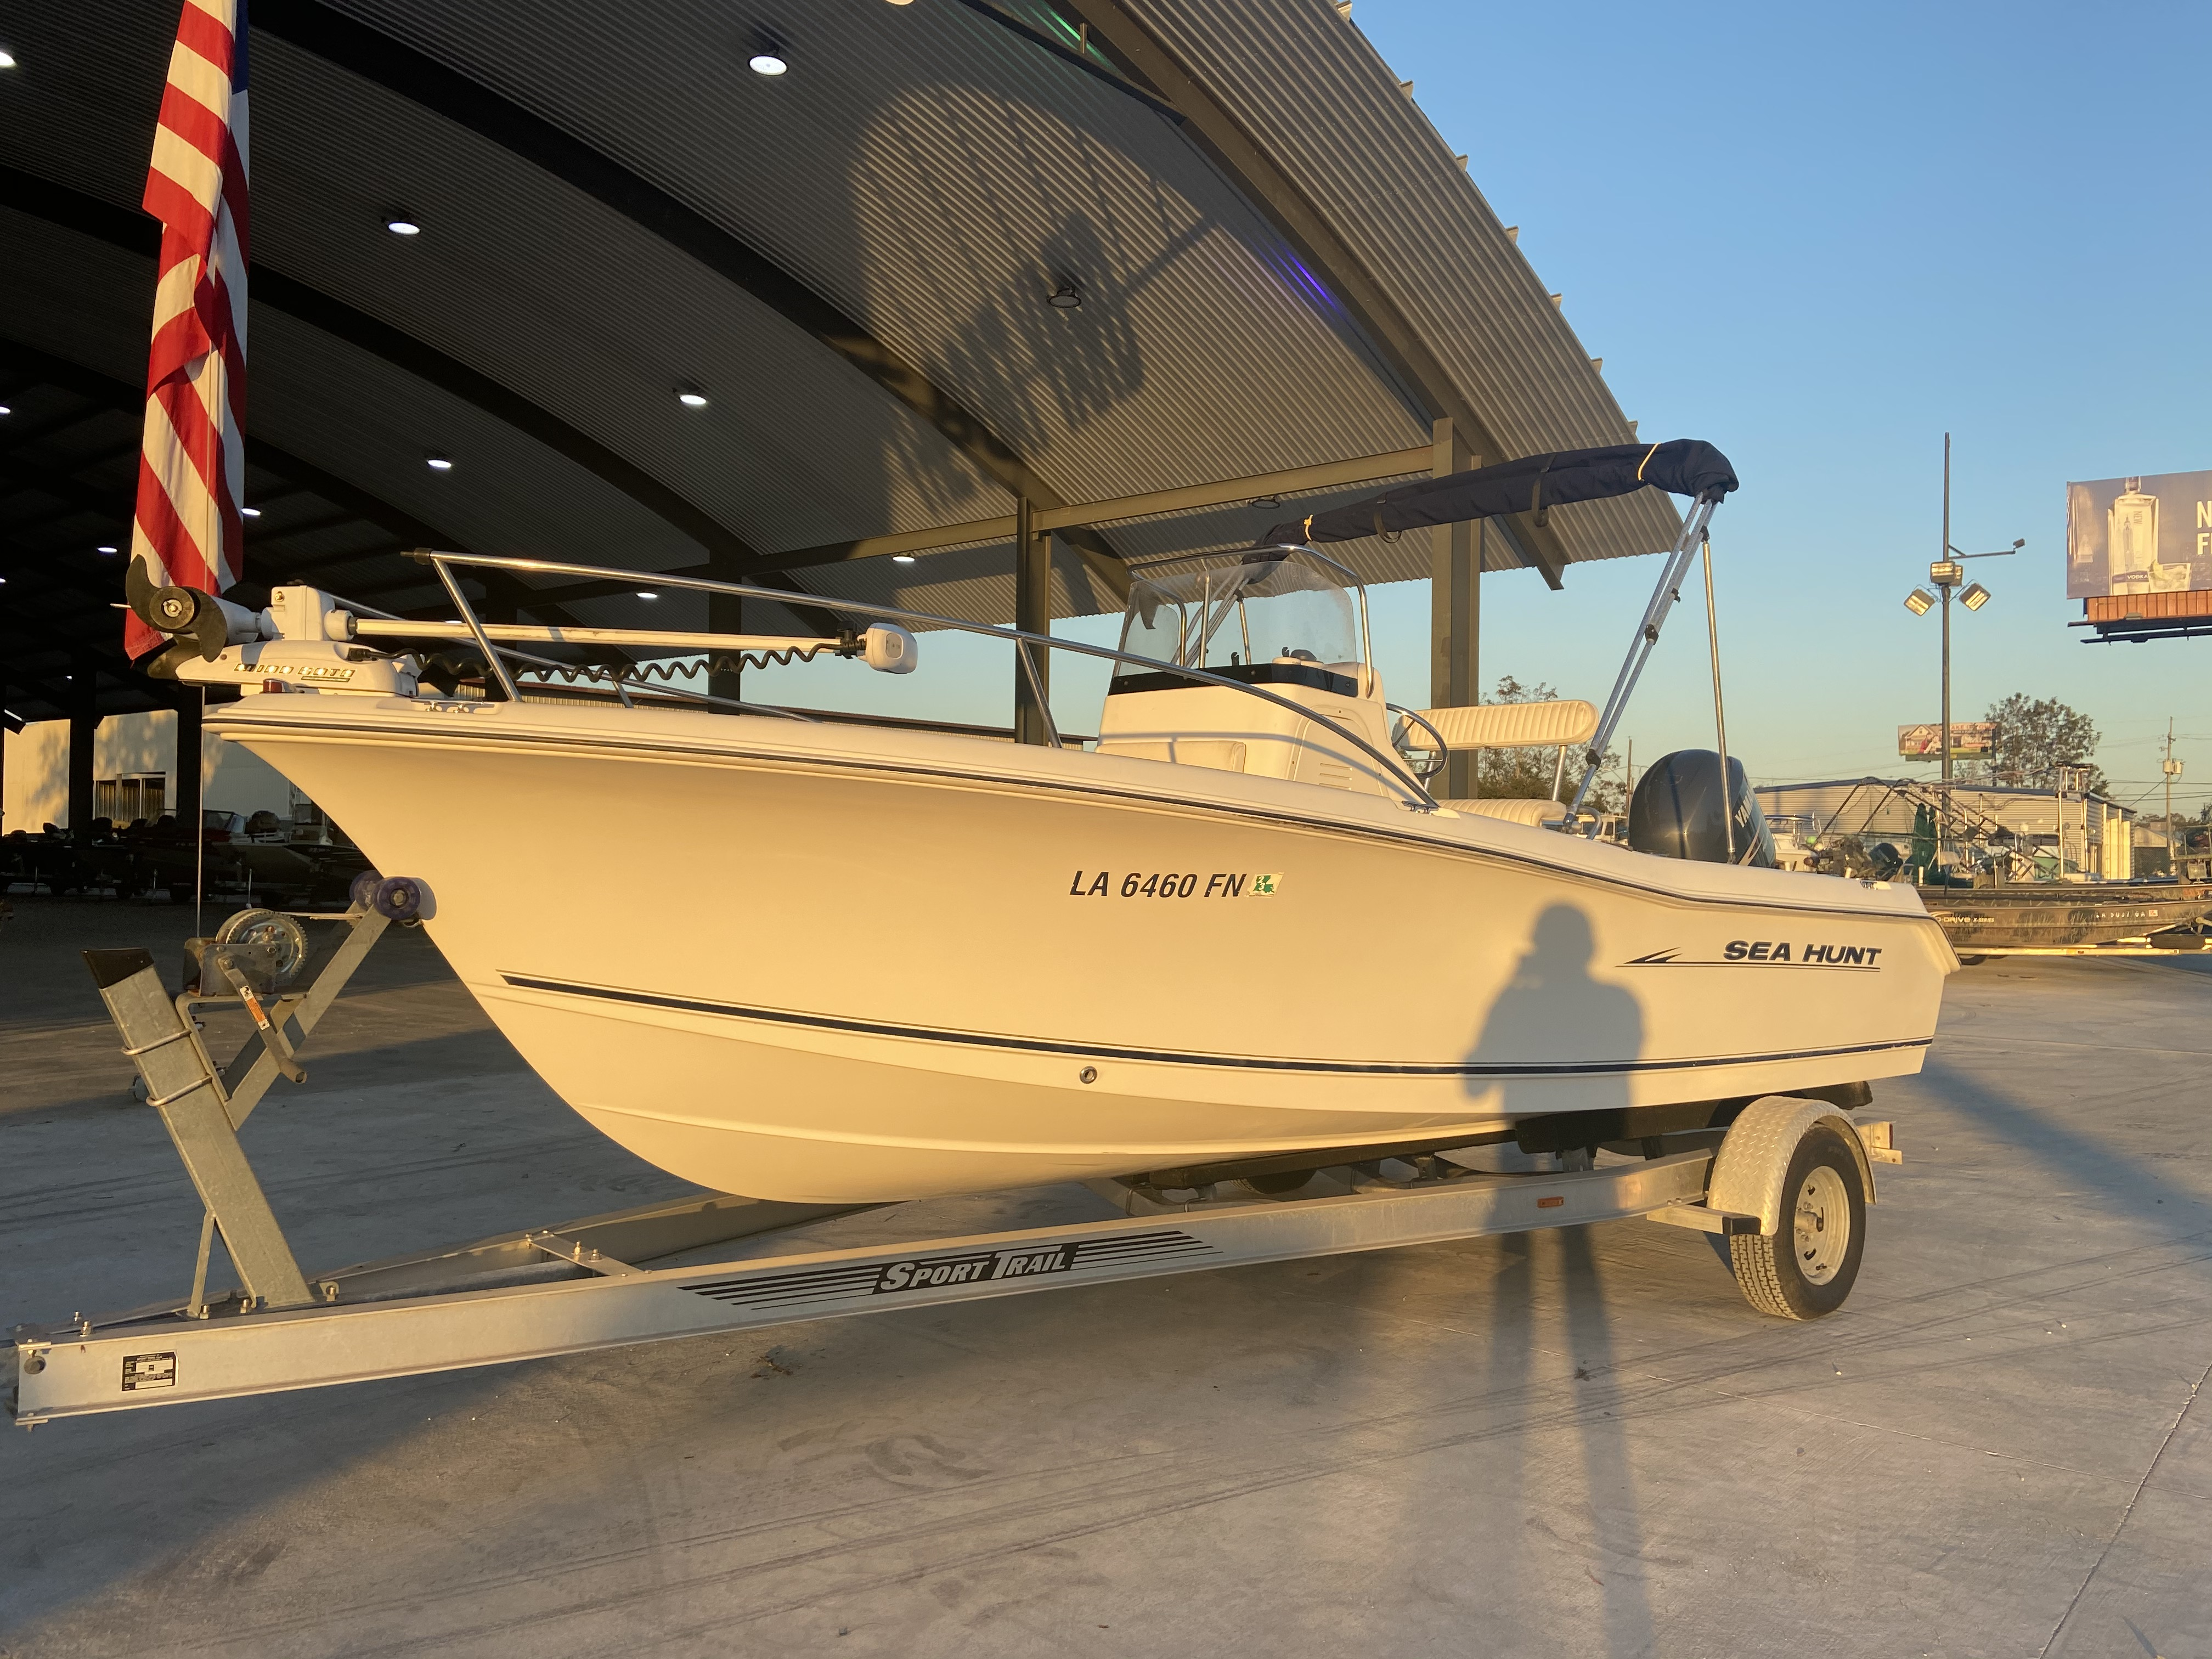 2007 Sea Hunt boat for sale, model of the boat is 207 Triton & Image # 2 of 28